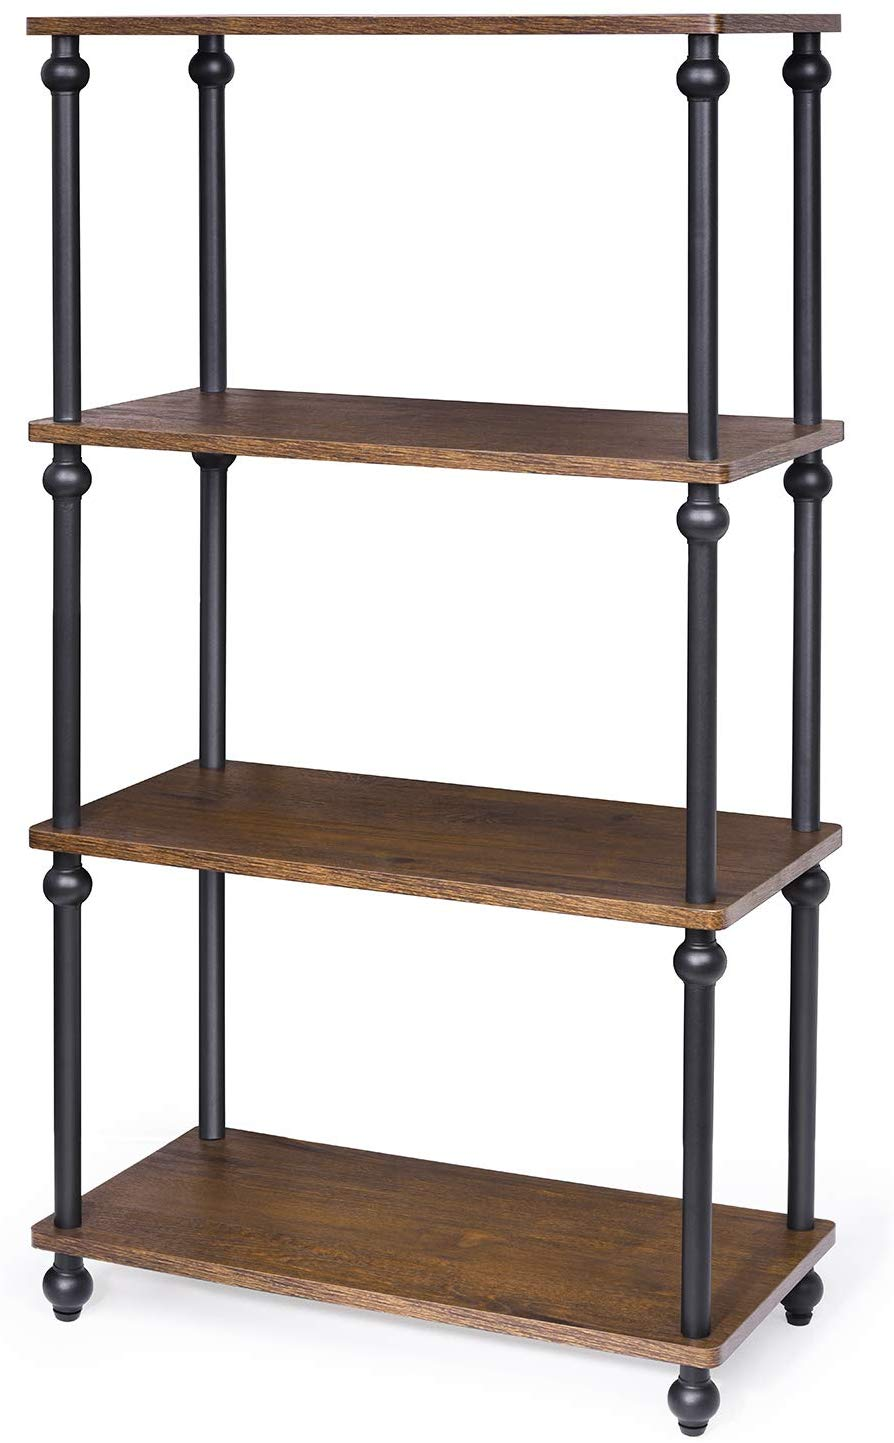 Industrial Bookshelf, 4-Tier Multipurpose Storage Rack Shelves for Living Room, Bedroom, Kitchen, Dark Walnut